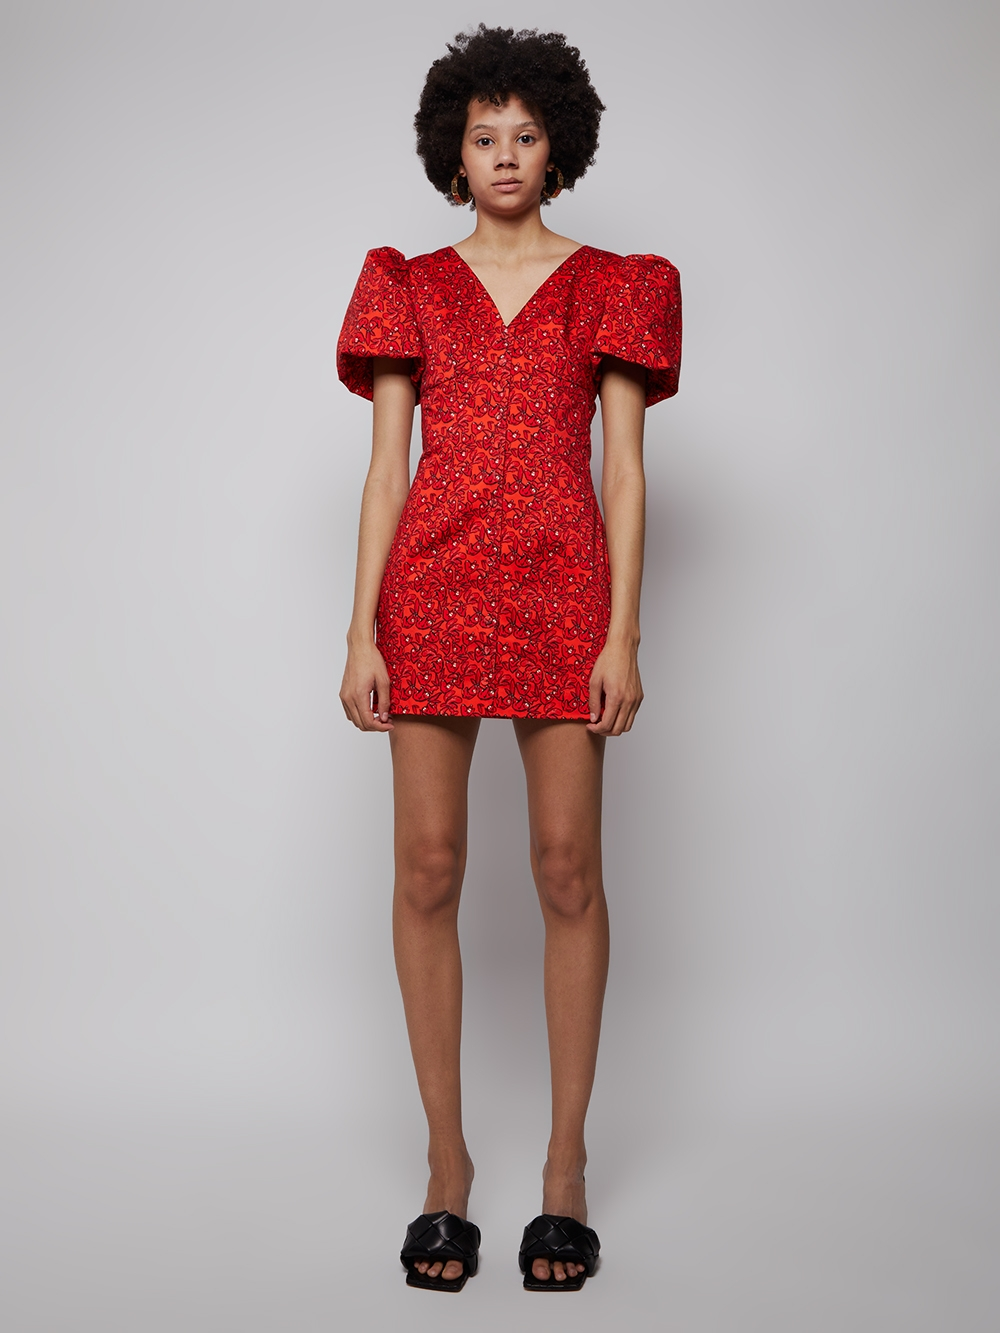 Pedra Bonita Dress Red Sloth by LHD, available on thewebster.us Hailey Baldwin Dress Exact Product